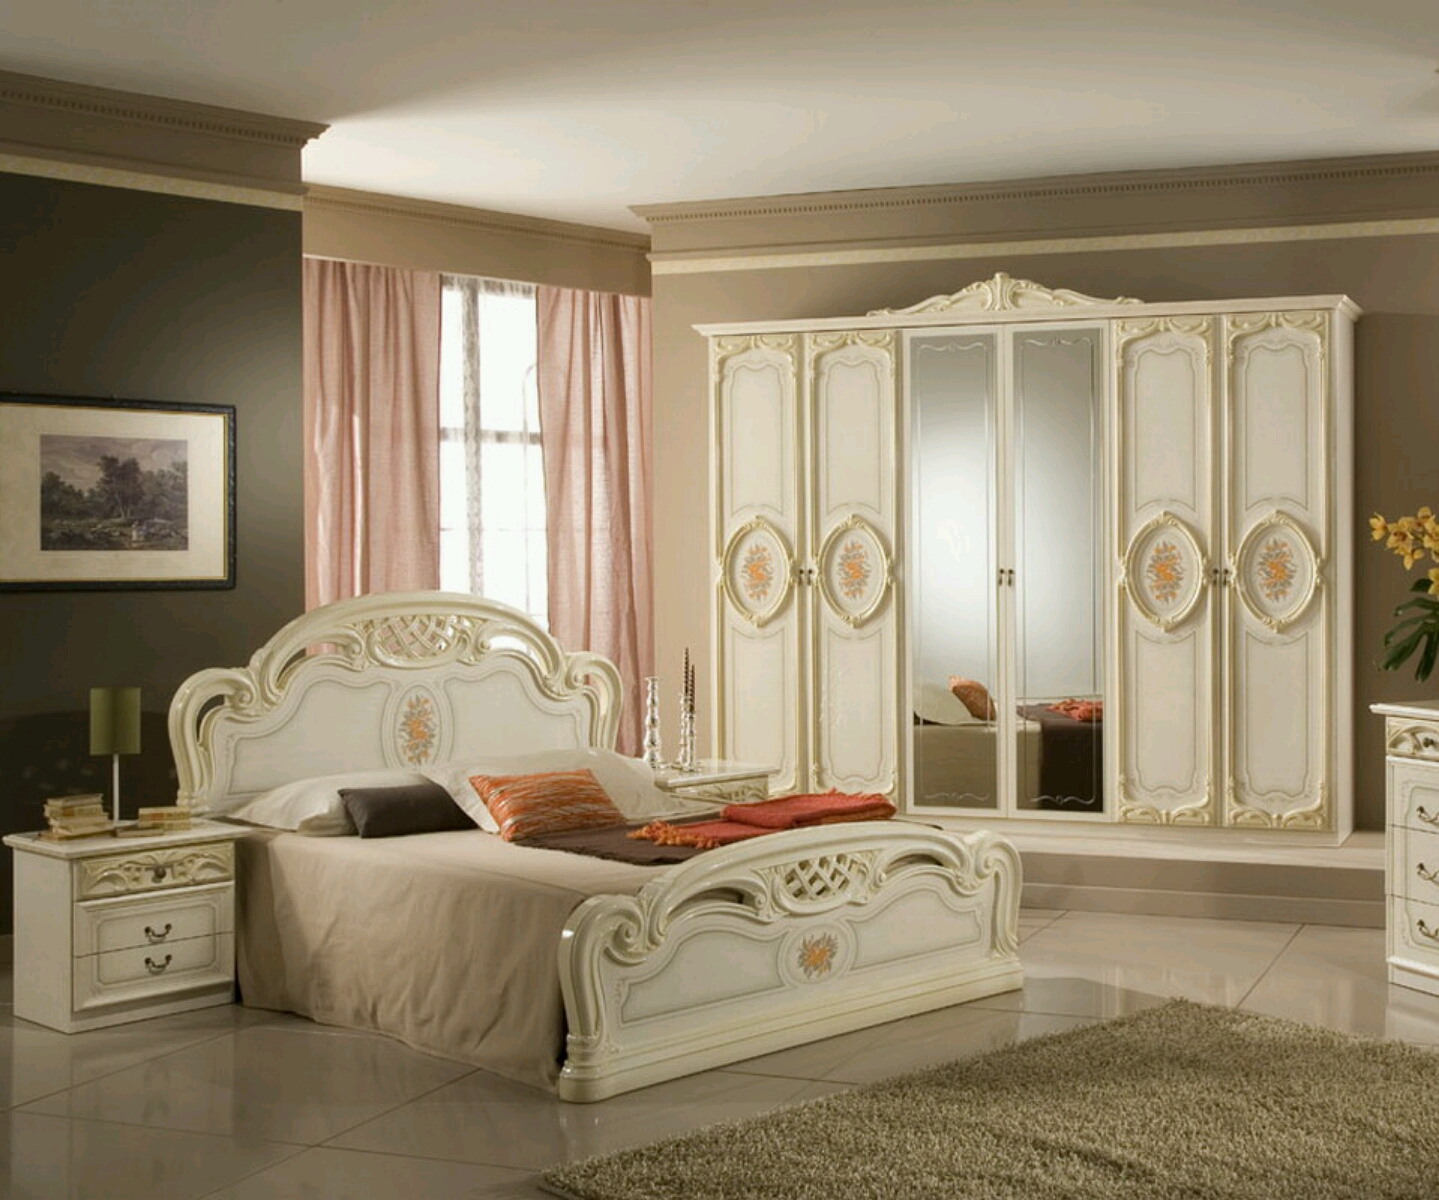 Bedroom Furniture: Modern Luxury Bedroom Furniture Designs Ideas.